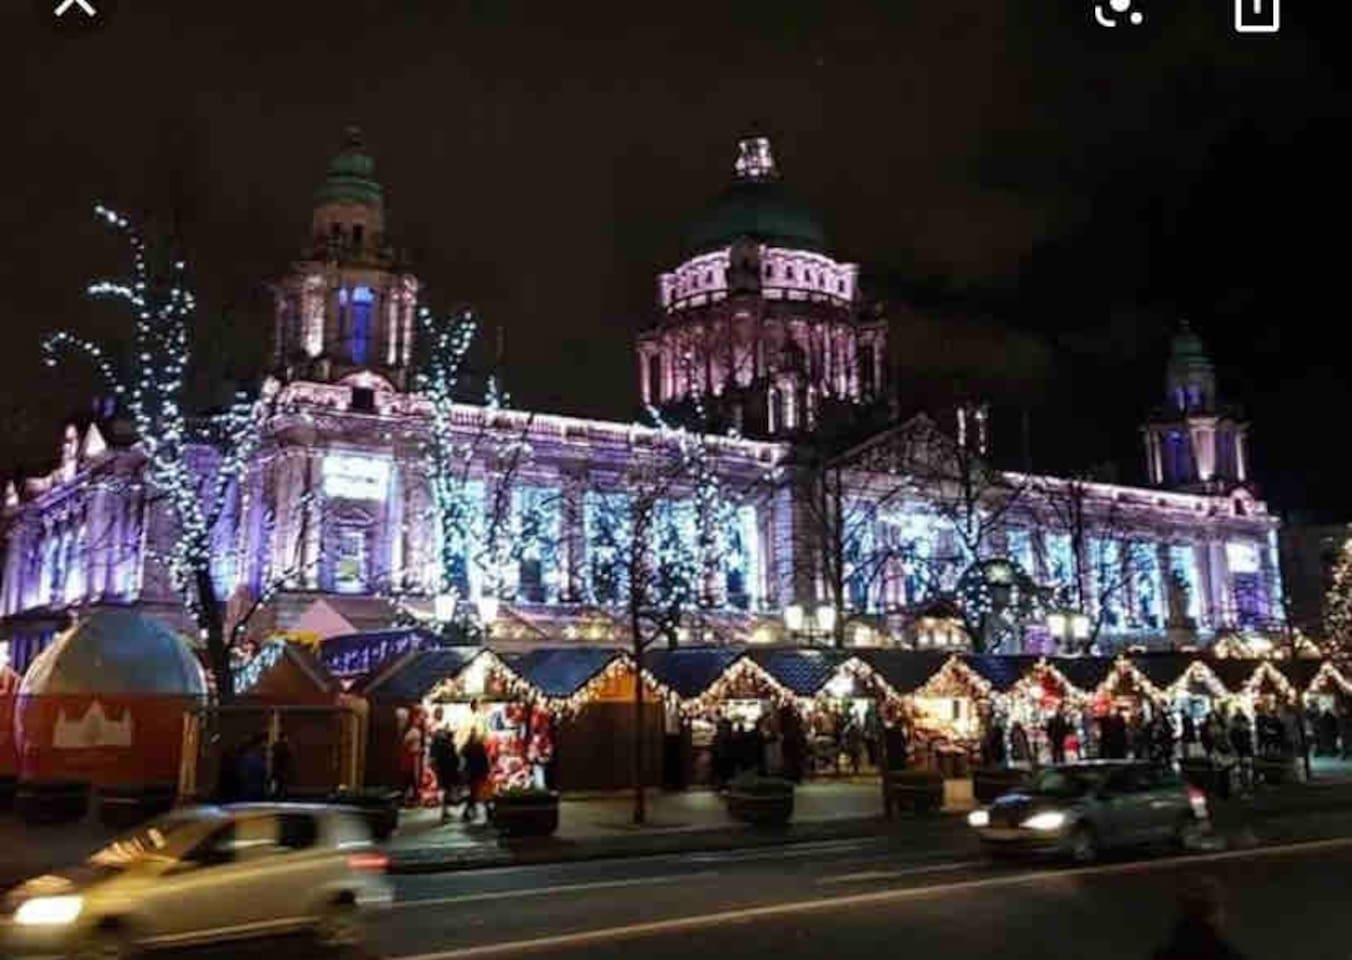 Belfast Christmas Market at City Hall